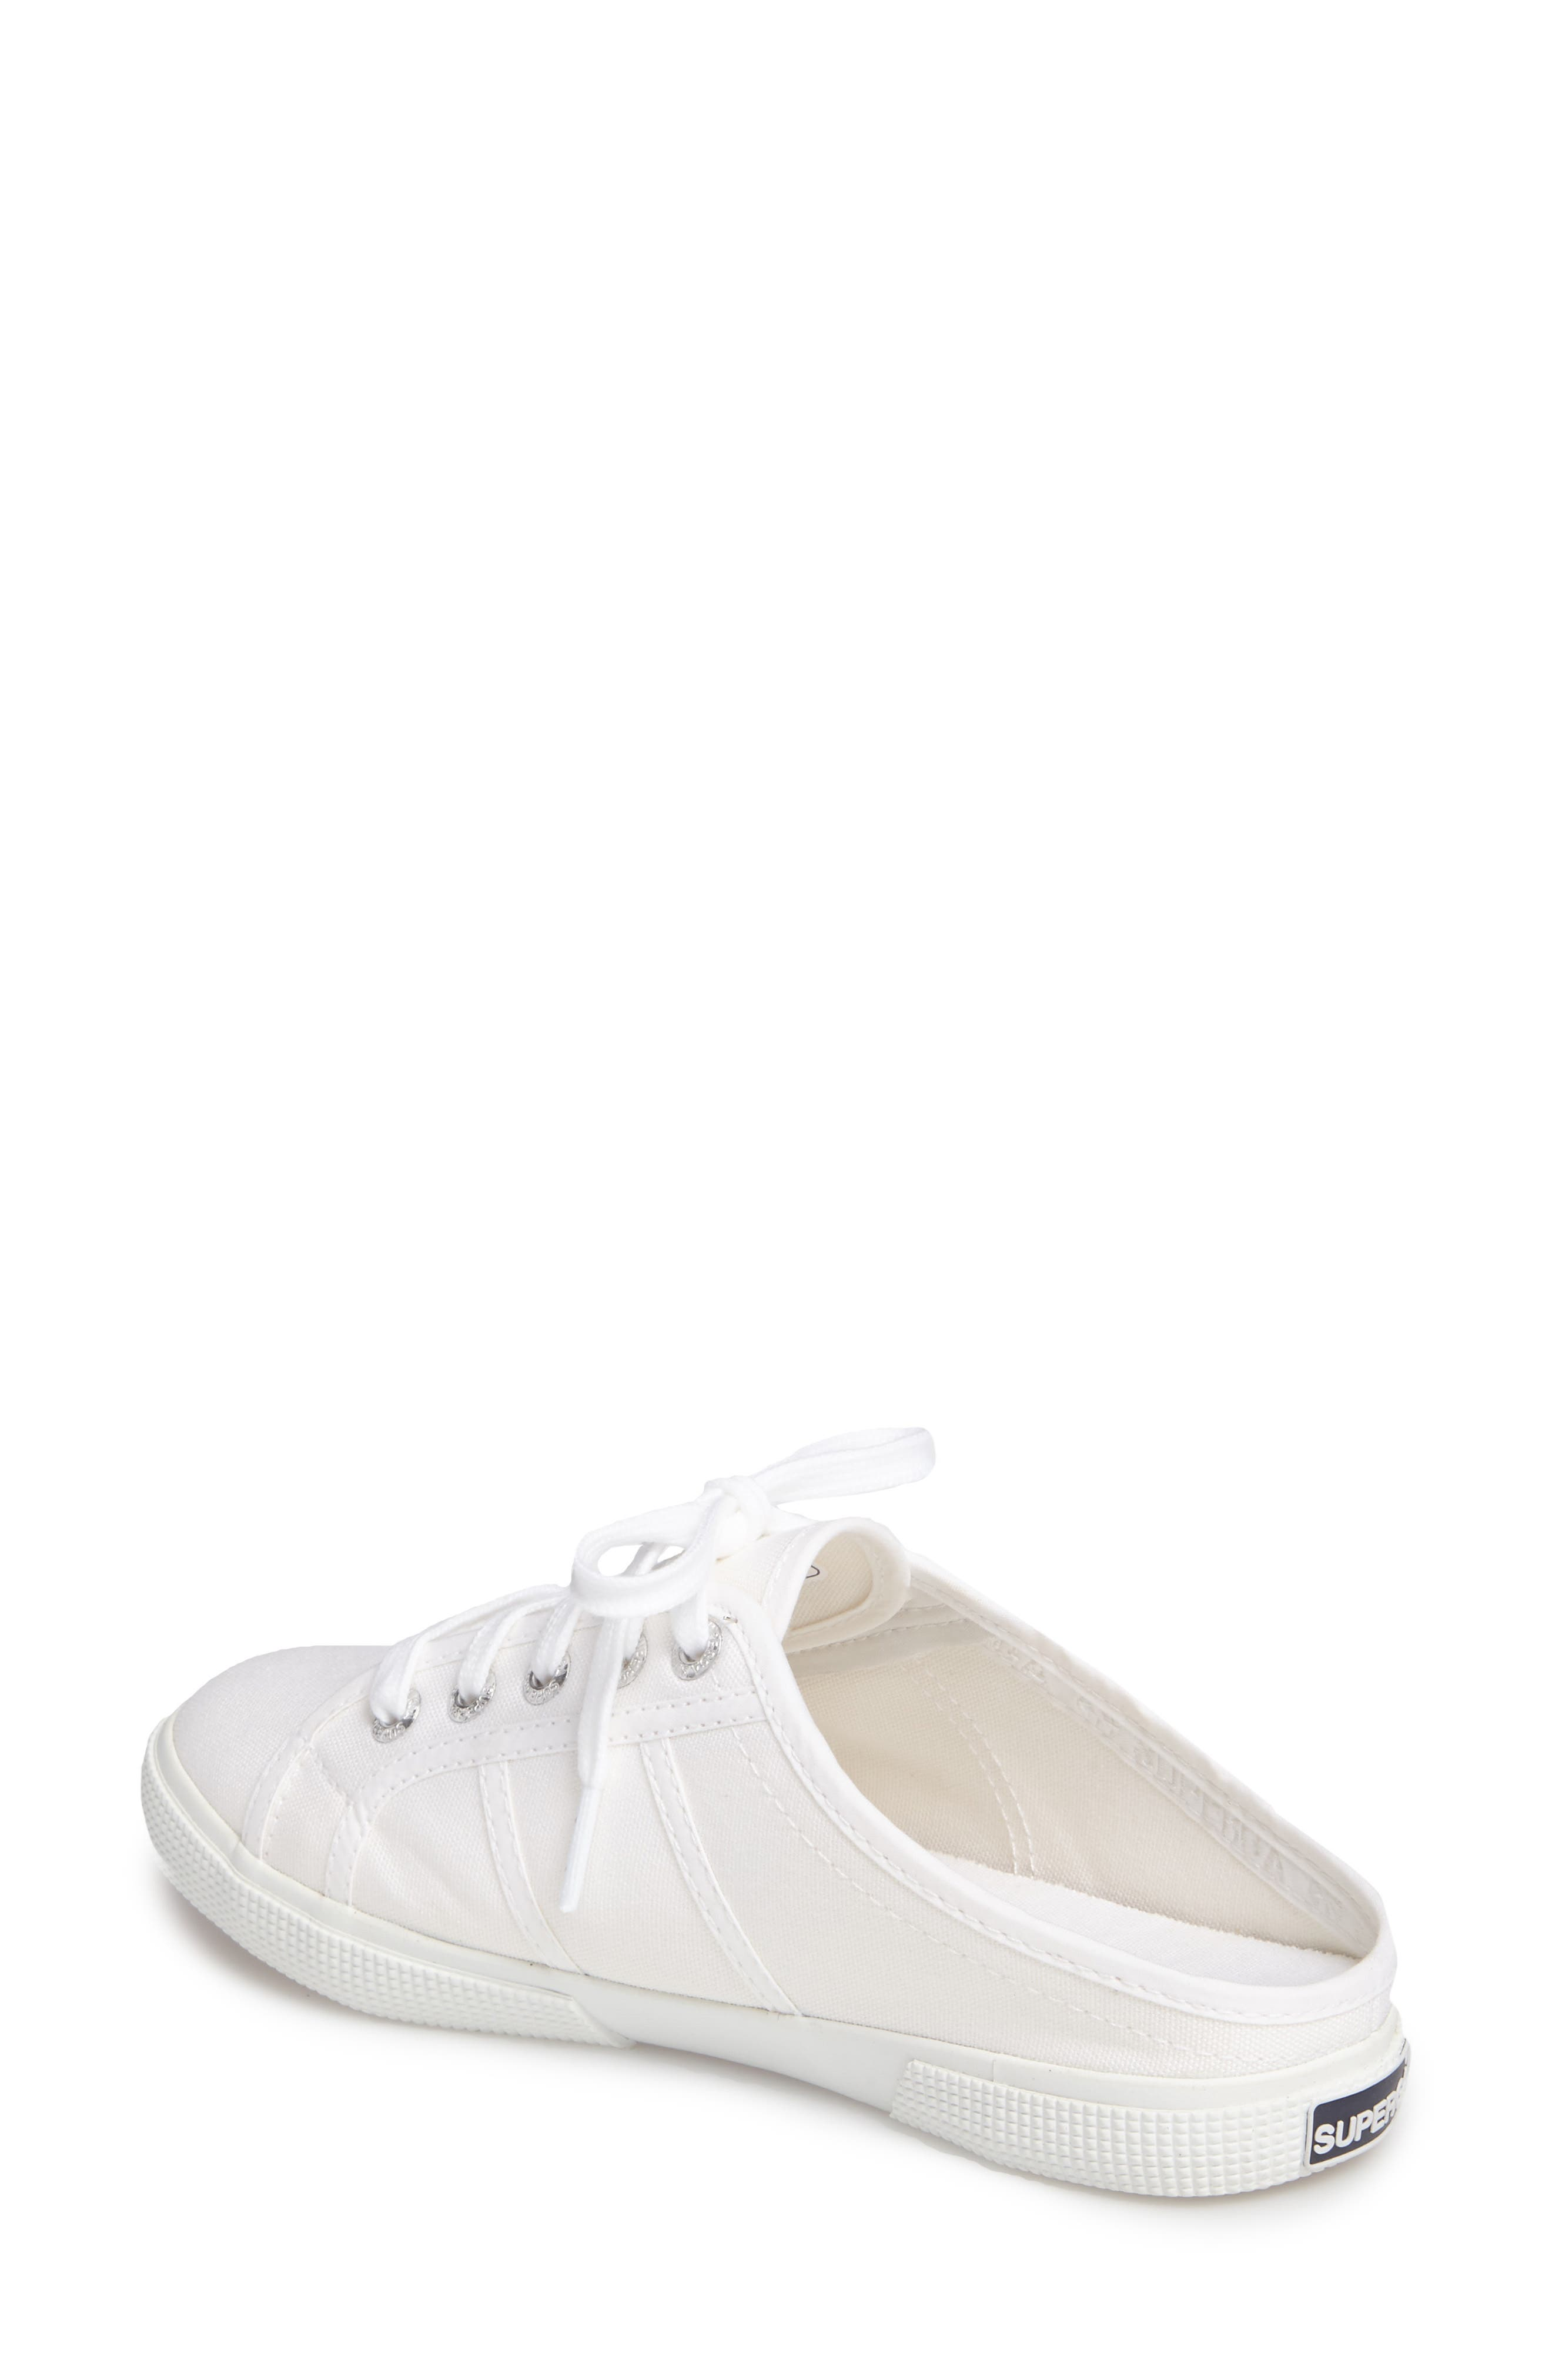 Alternate Image 2  - Superga 2288 Sneaker Mule (Women)